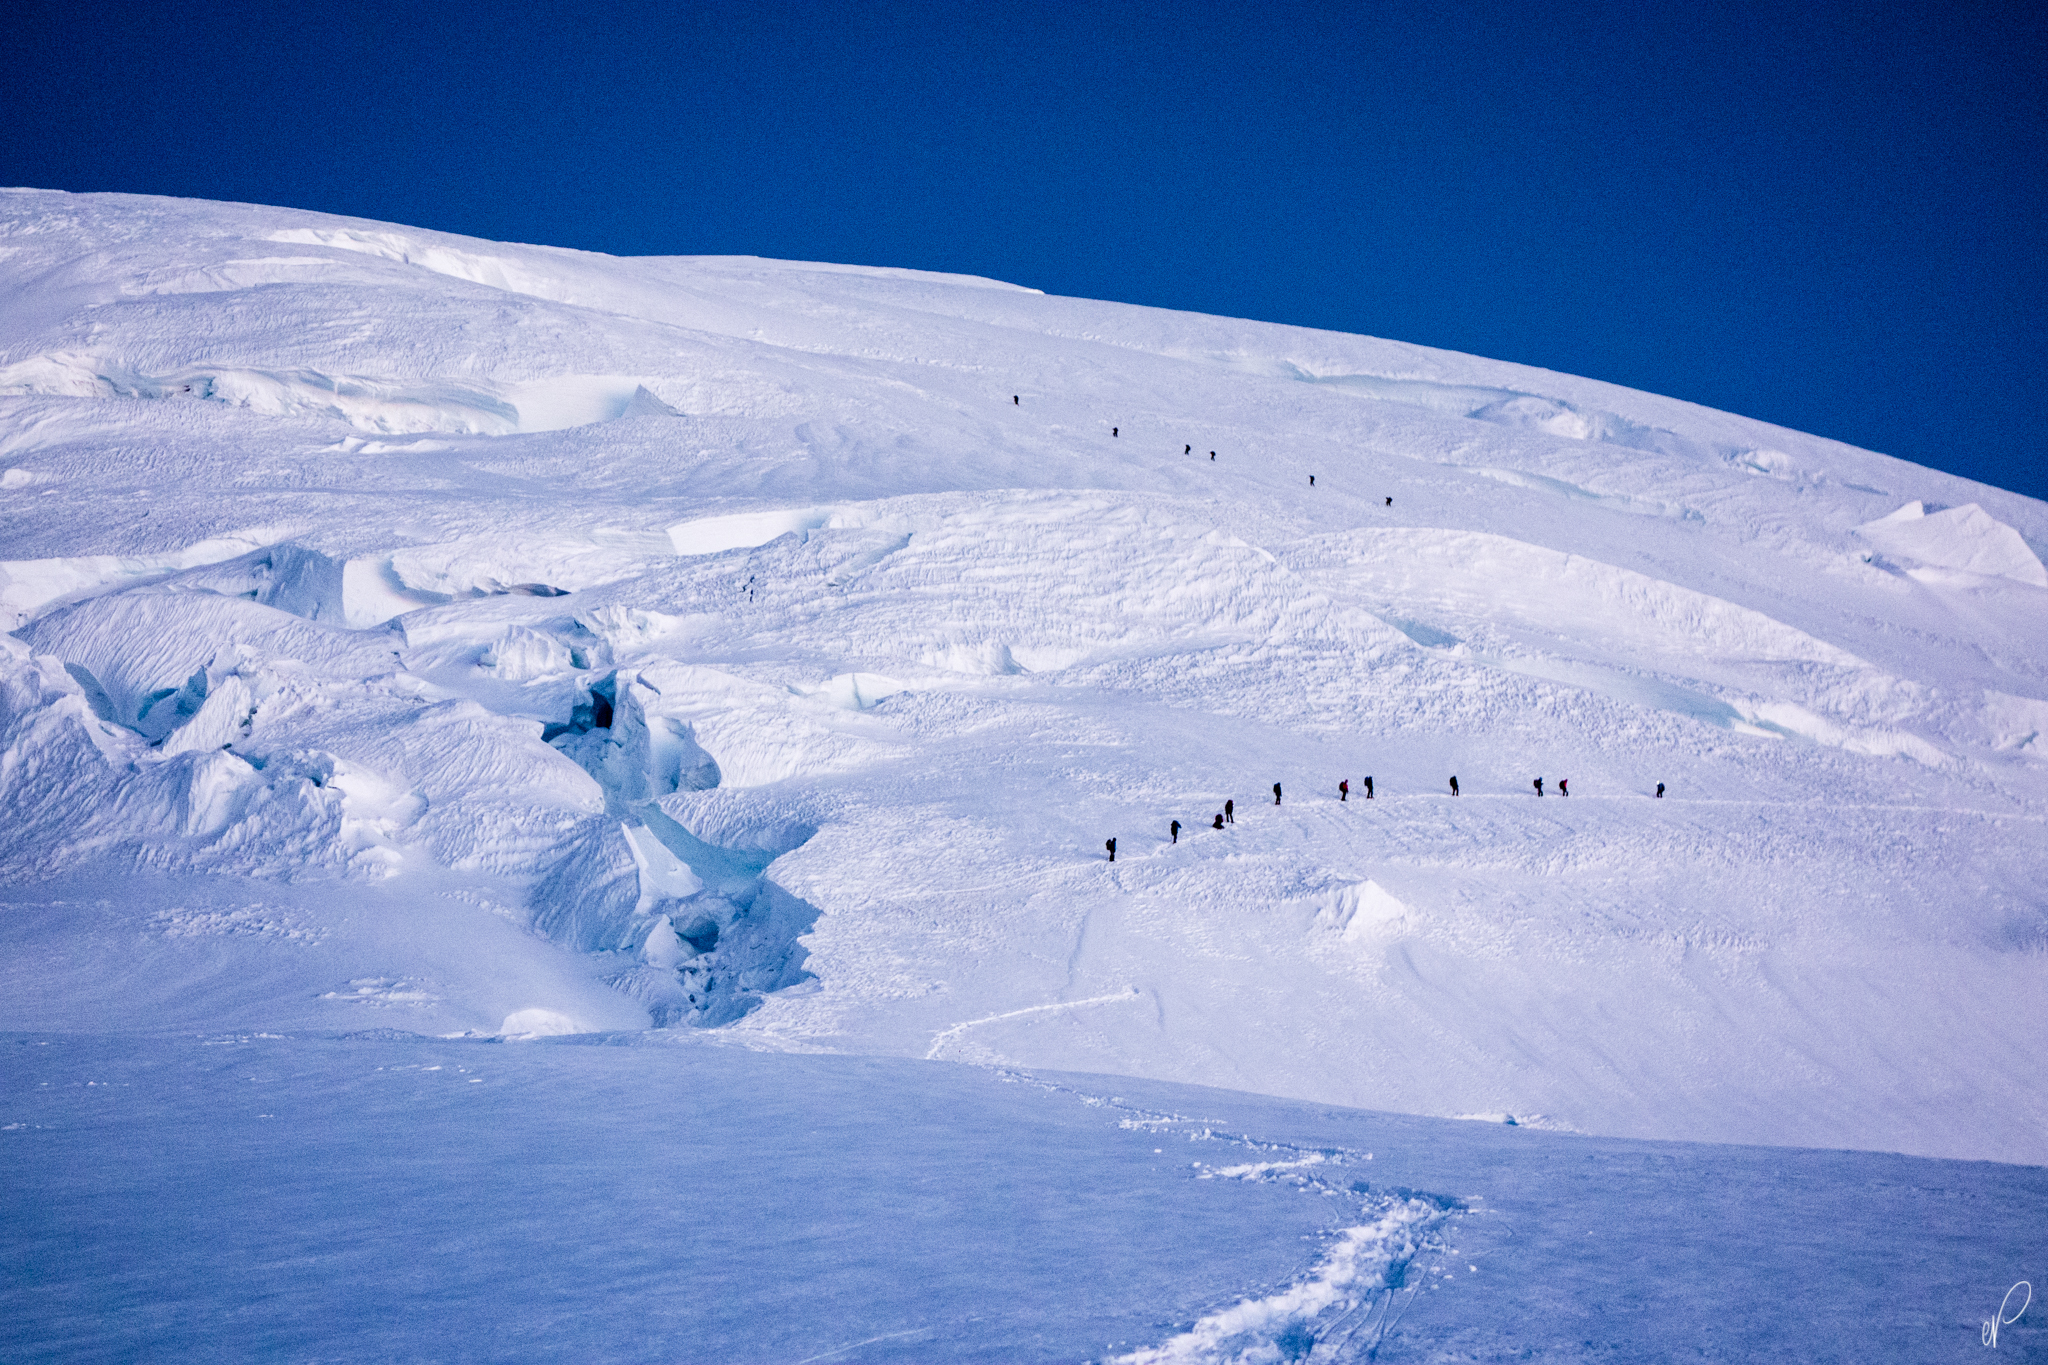 Two groups ahead of us make their summit bids on the Emmons Glacier